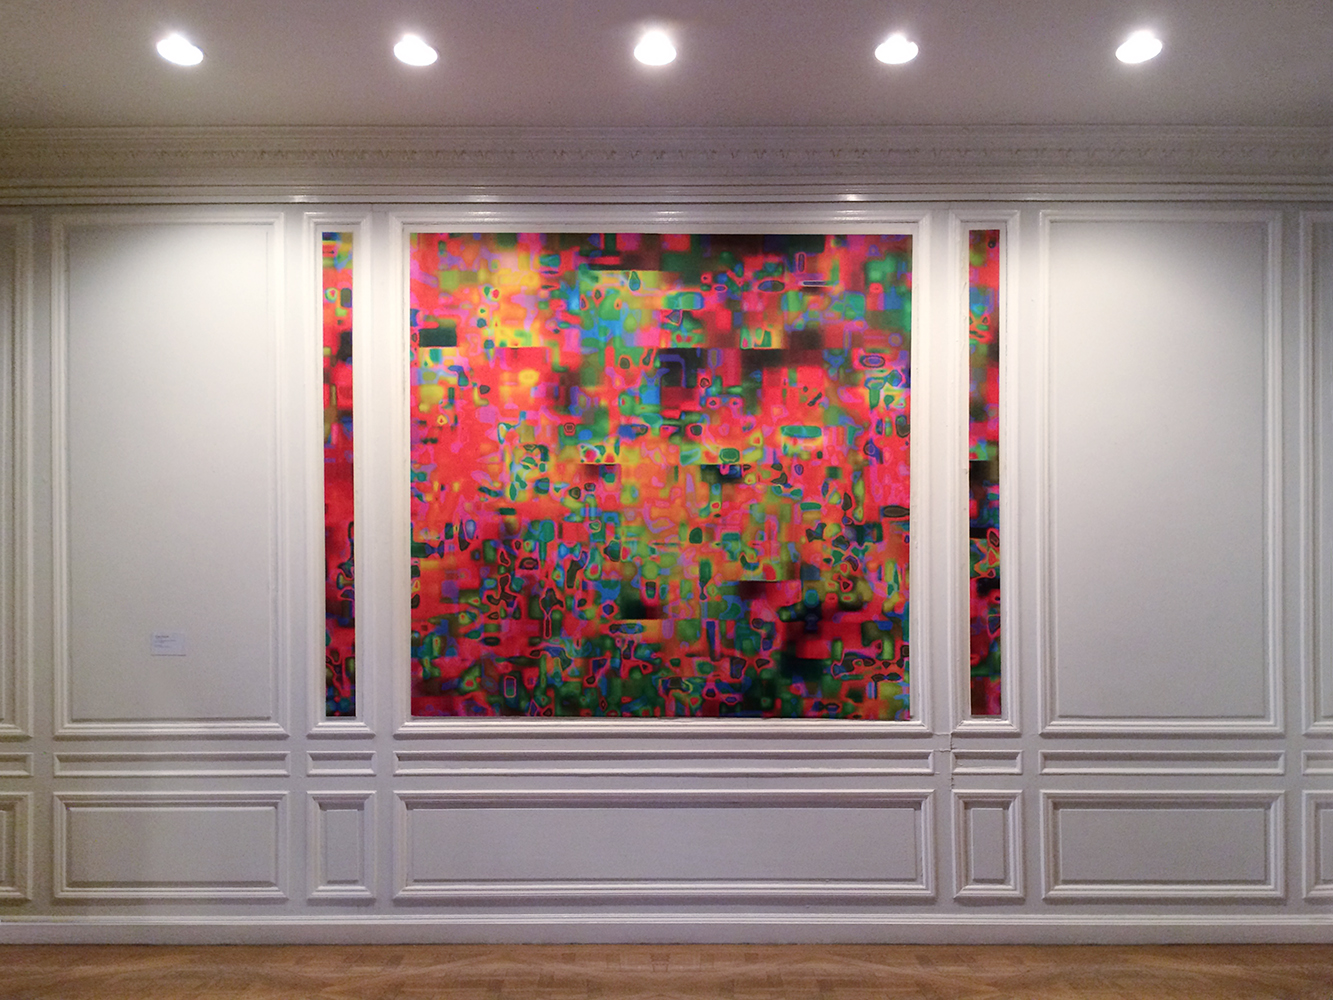 Installation View:  1014 (Goethe House), New York  Stuck Together Pieces!,  2016-17 © Elias Wessel